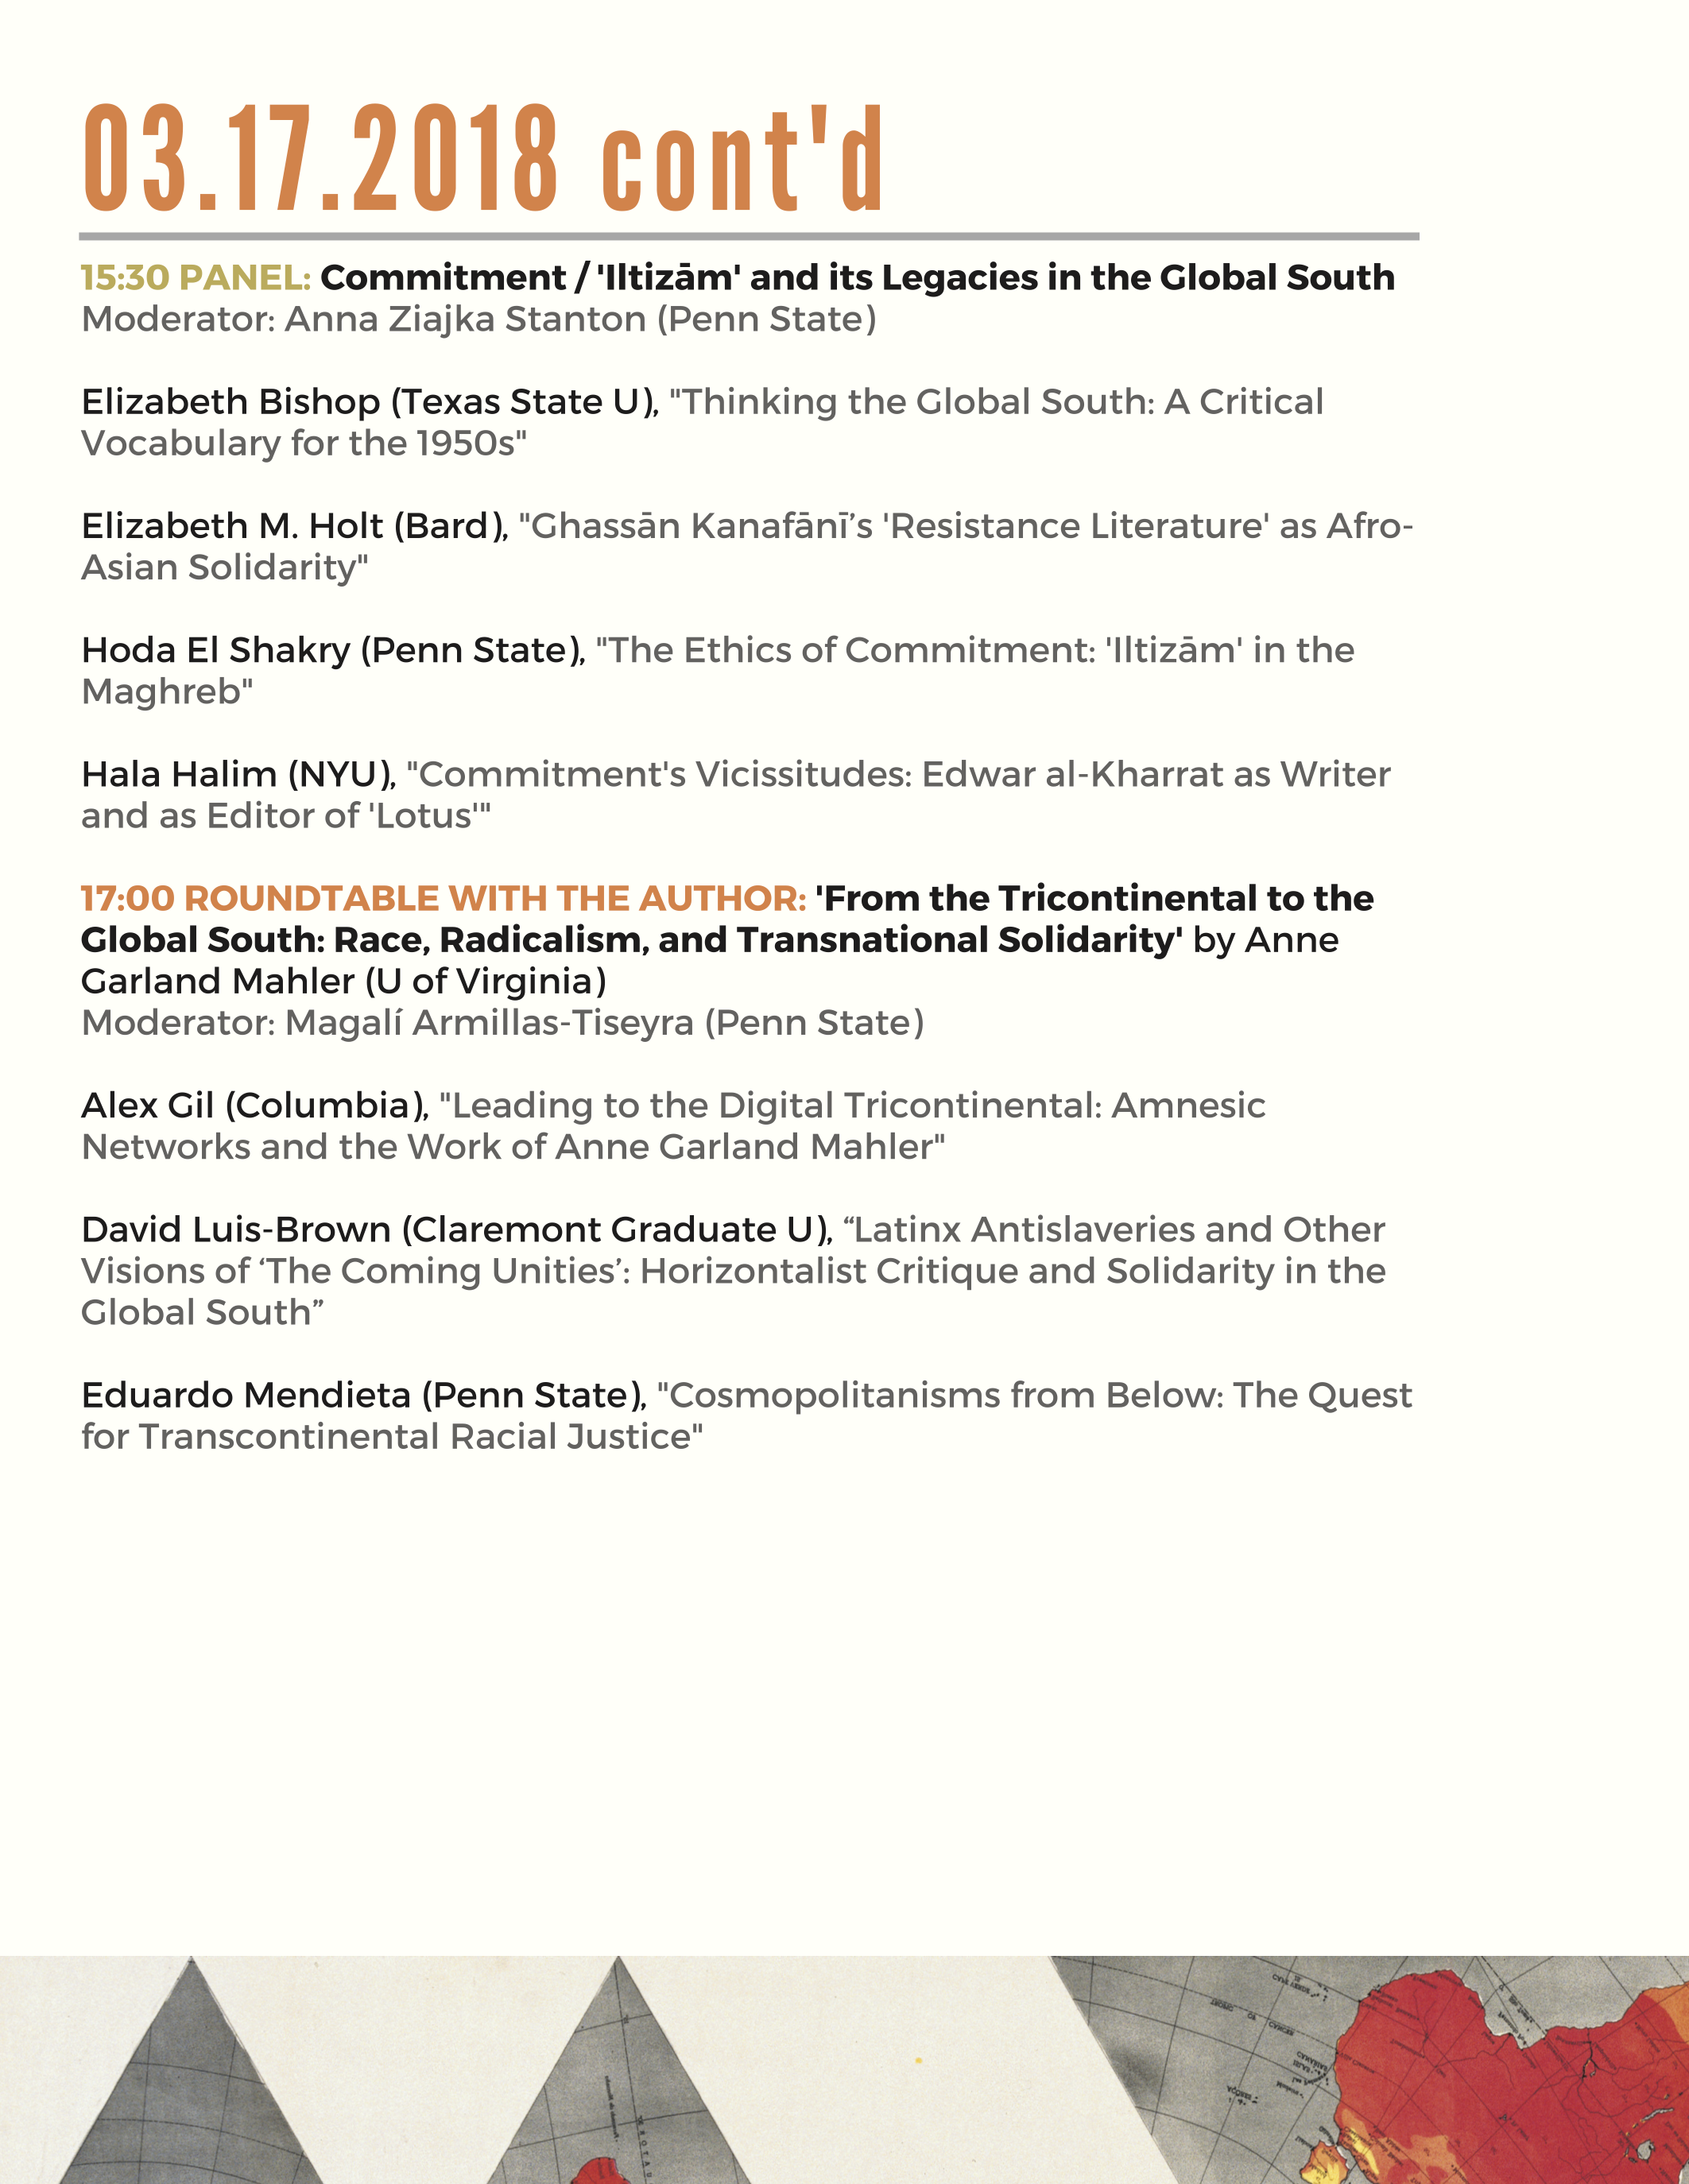 Thinking the Global South - Conference Program-5 (dragged) copy.png